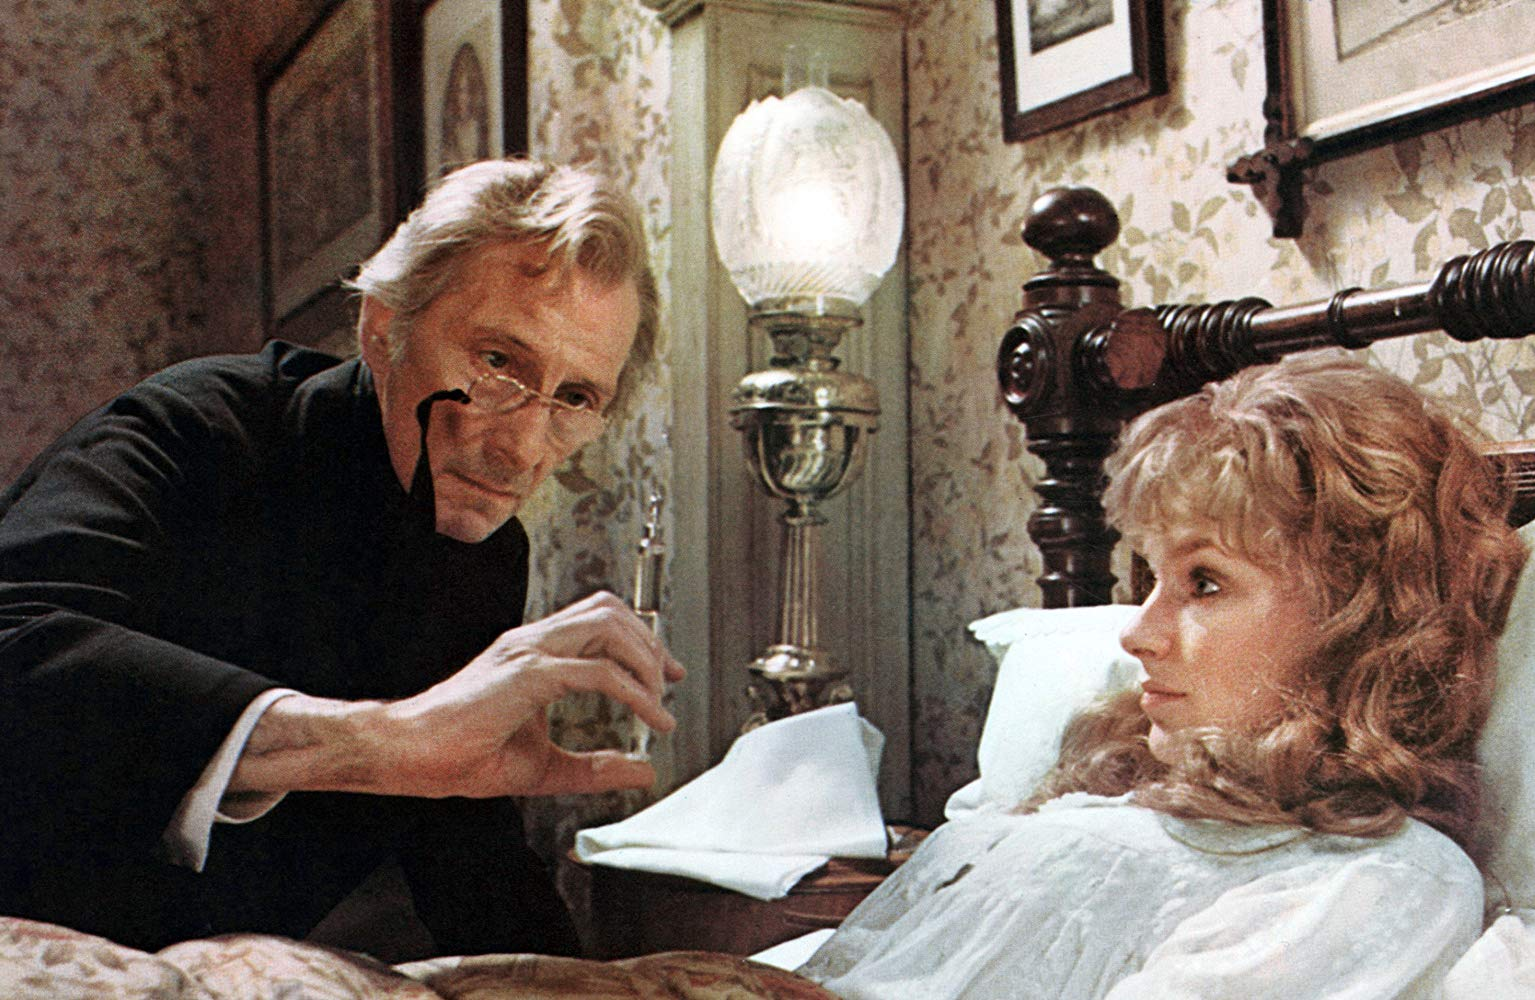 Peter Cushing injects daughter Lorna Helbron with the serum in The Creeping Flesh (1973)